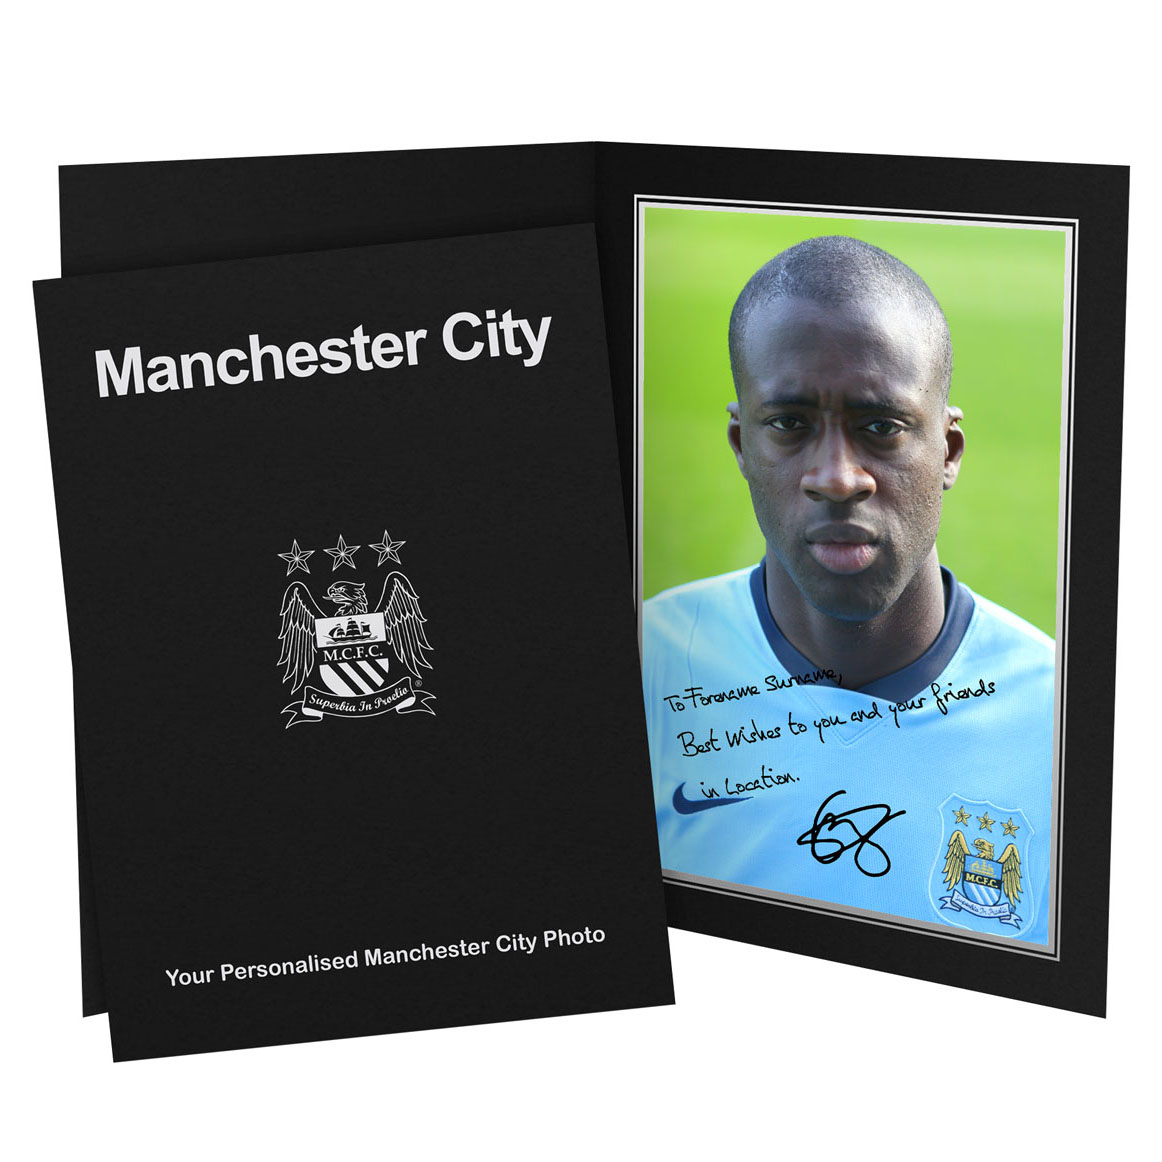 Manchester City Personalised Signature Photo in Presentation Folder - Yaya Toure